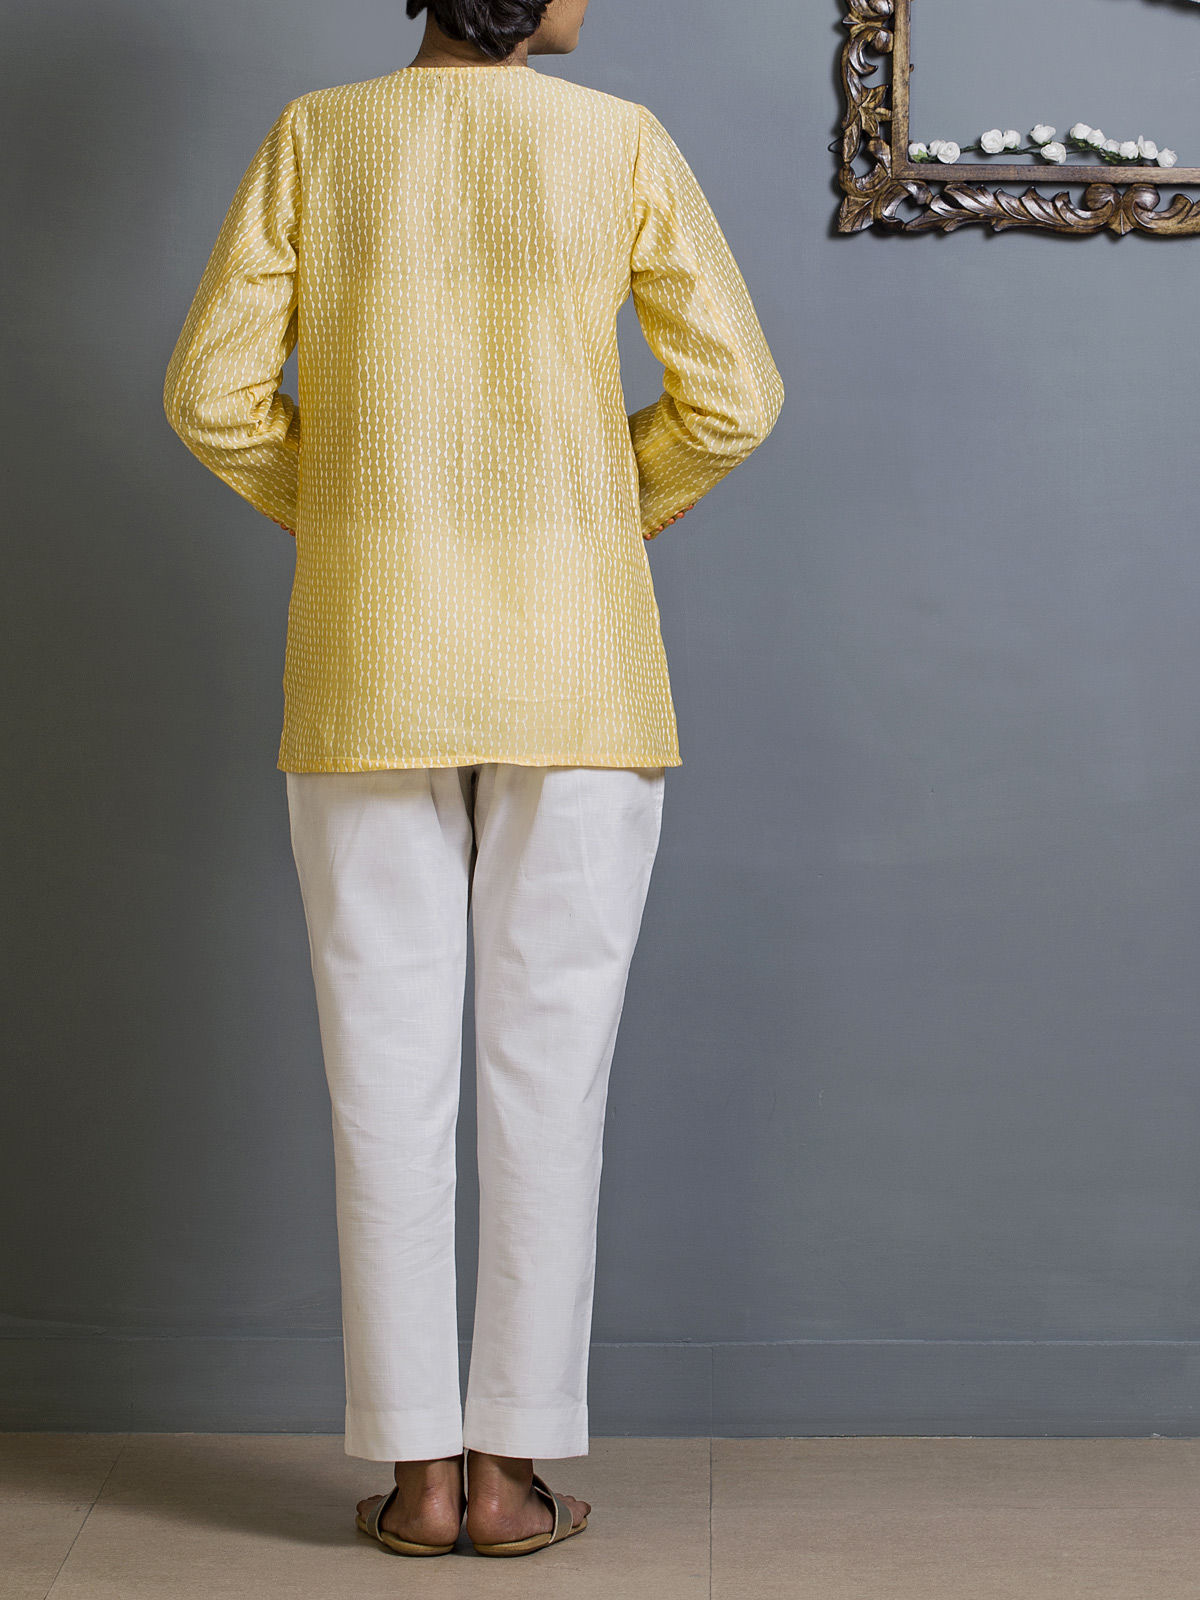 Canary Yellow Chanderi Ethnic Top